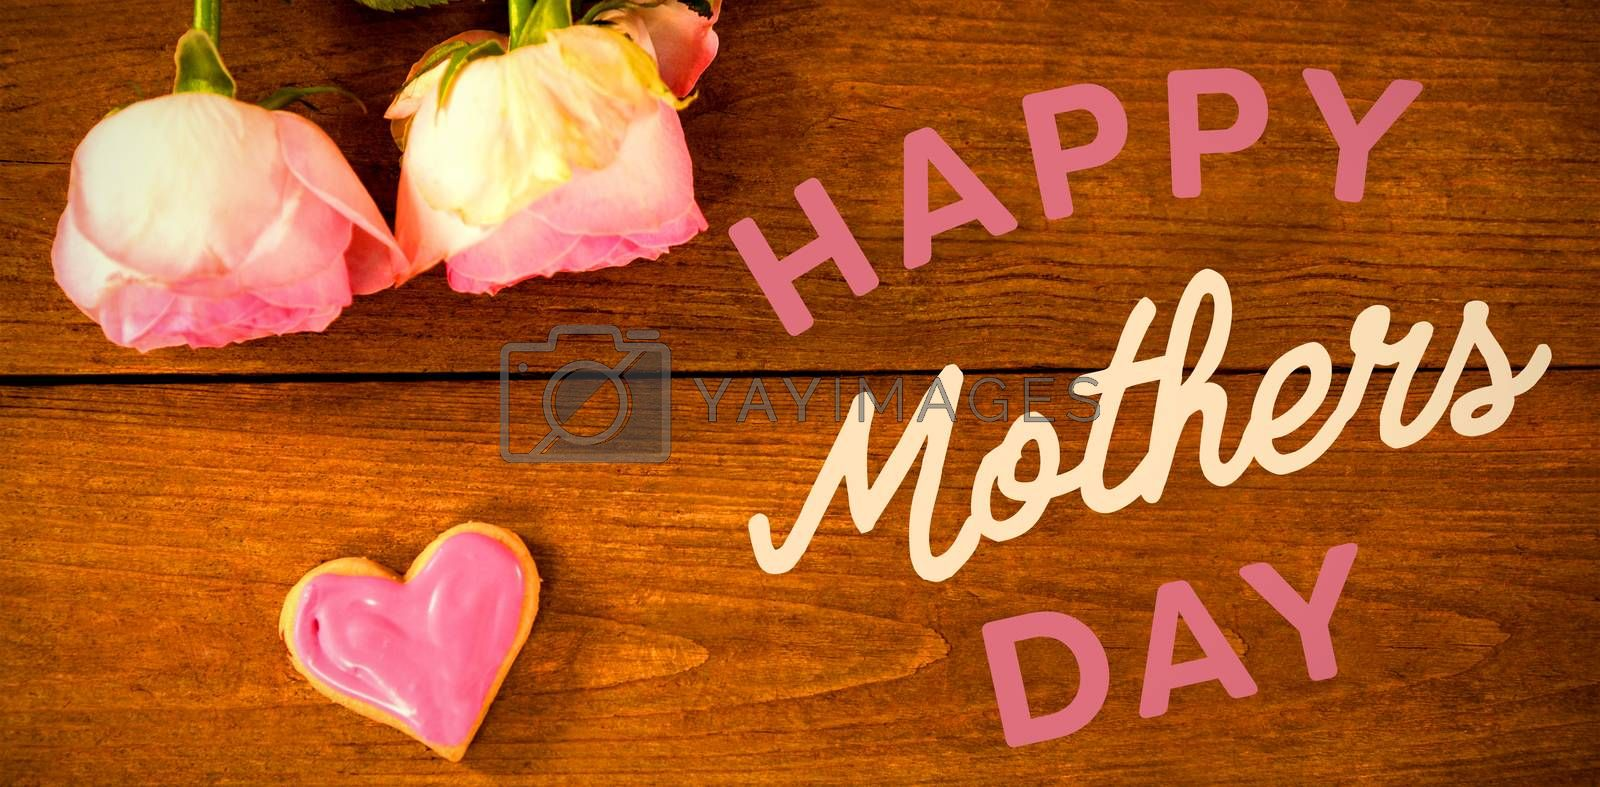 Happy mothers day message on table with roses